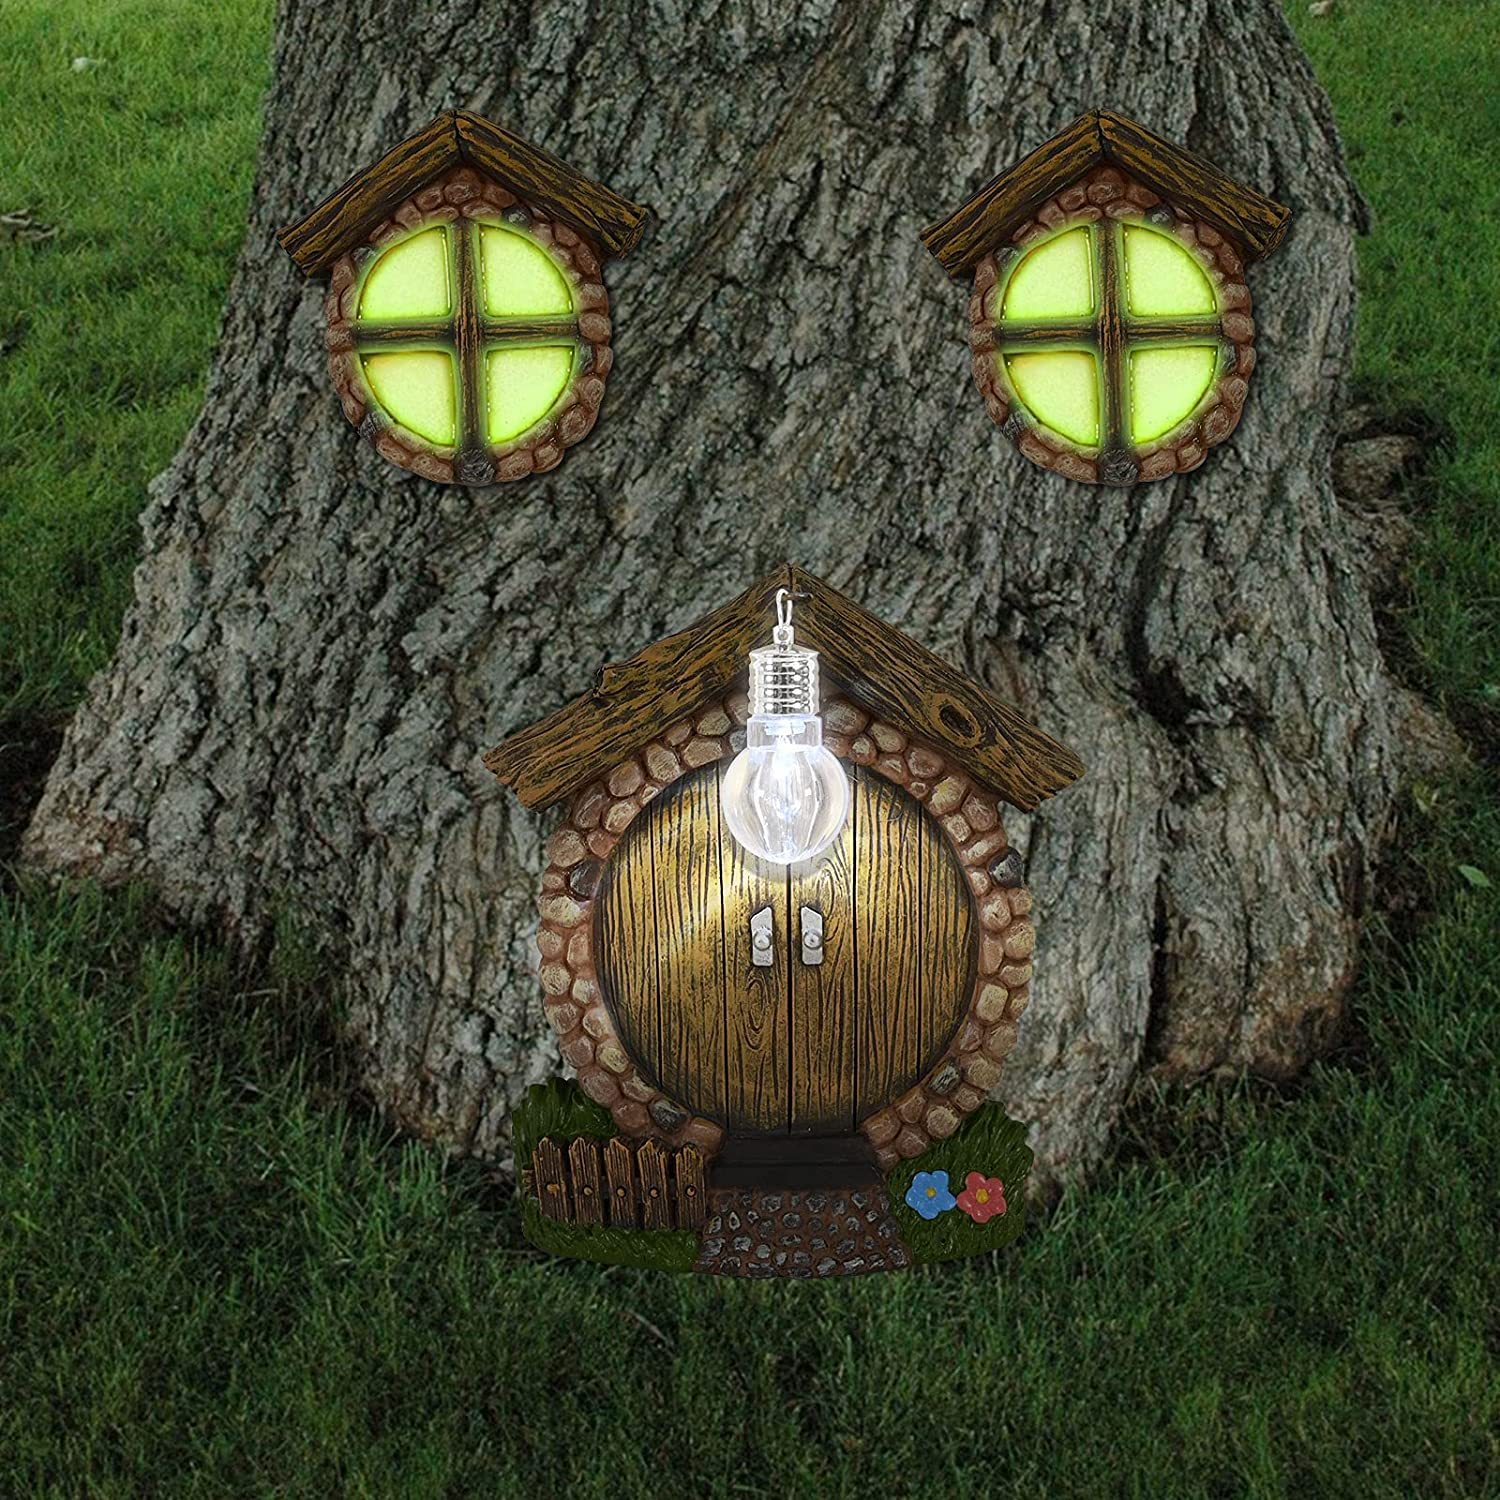 Hand-Mart Miniature Fairy Gnome Home Window and Door with Fairy Litter lamp for Tree Hugger Decoration, Glow in Dark Fairies Sleeping Noctilucence Decoration Yard Art Garden Sculpture Lawn Ornament